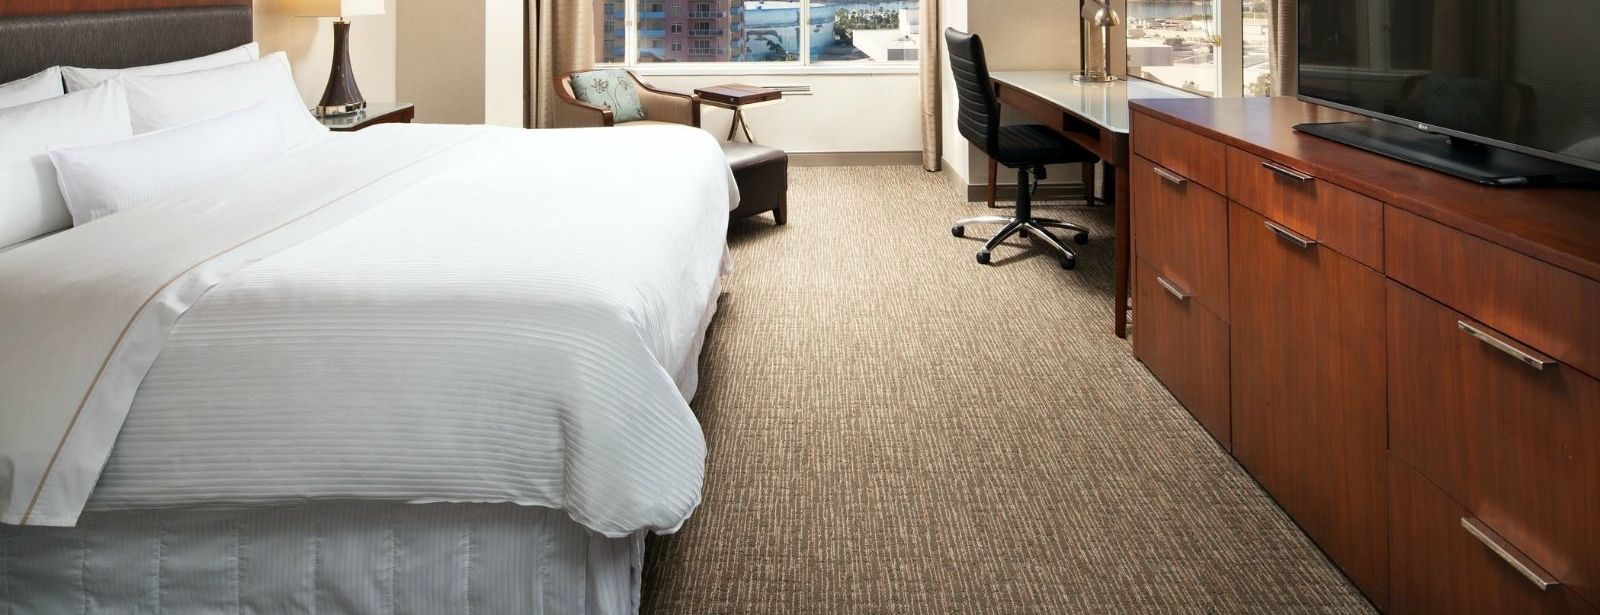 The Westin Long Beach Hotel - Deluxe and Executive Suites